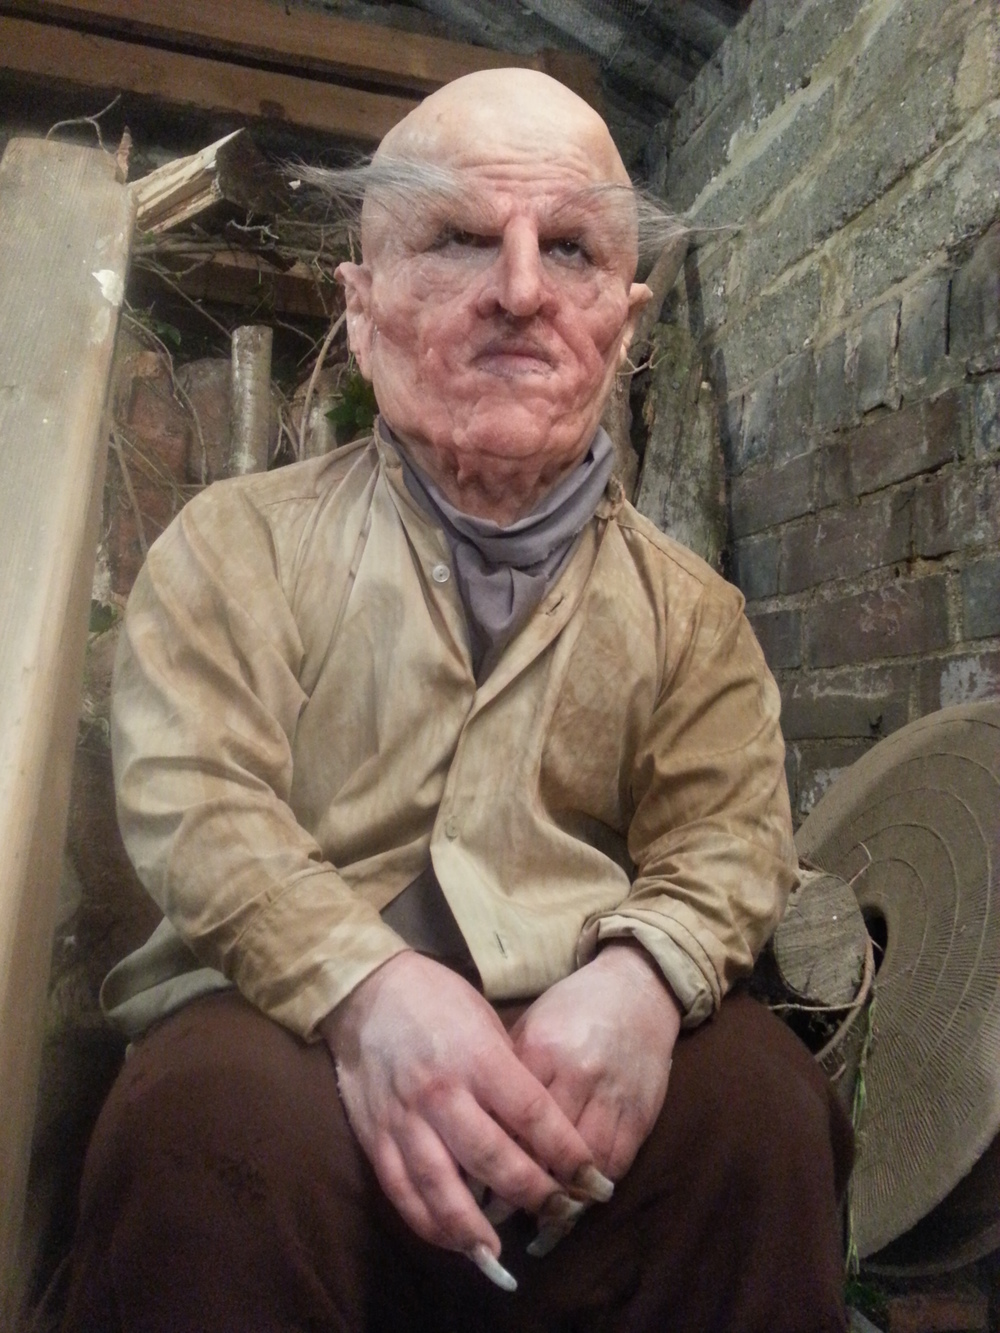 'Fengis' - Full head prosthetic for short film 'The Last Rose' (2013)